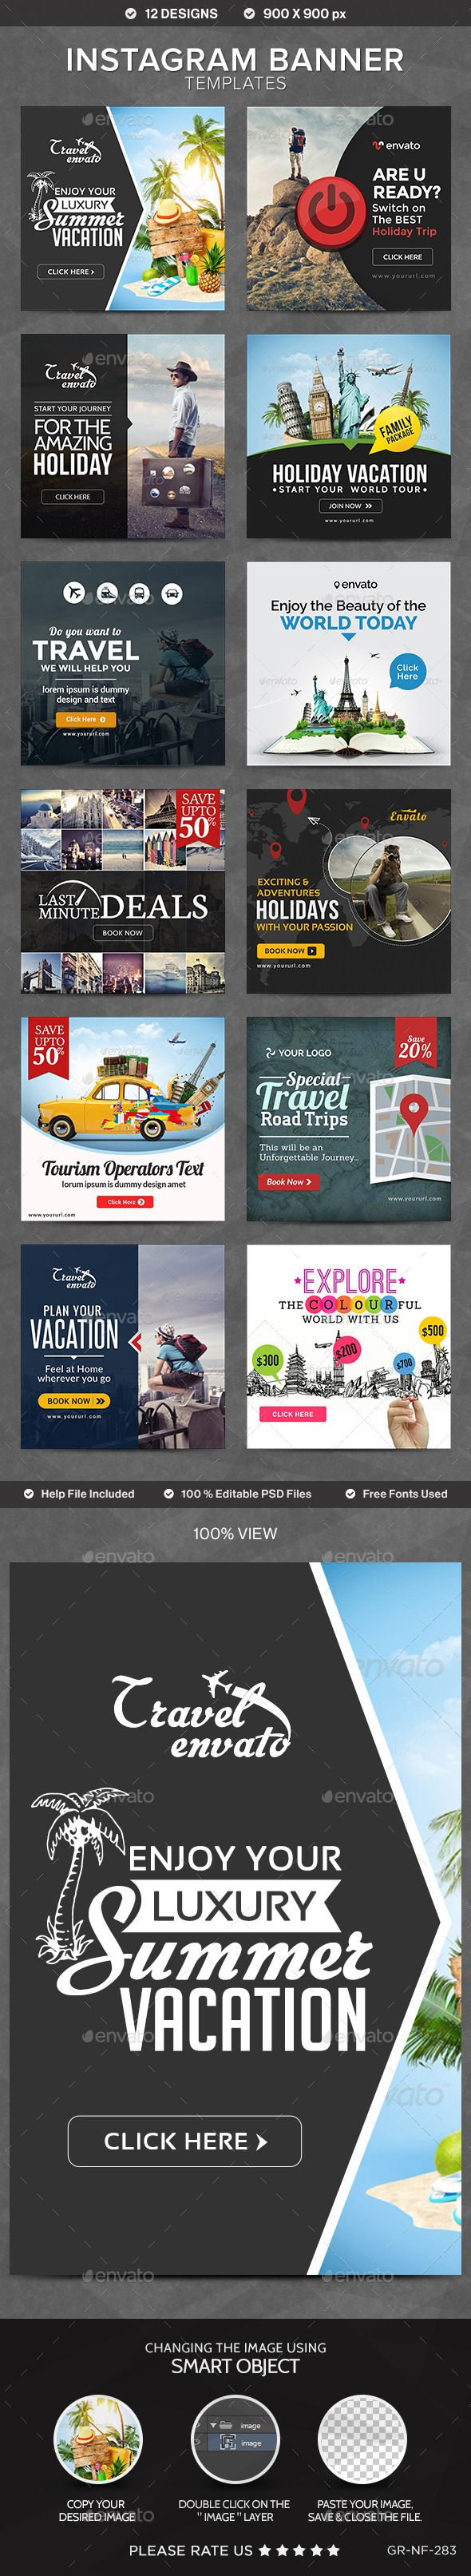 Instagram Banner Templates - 12 Designs - Banners & Ads Web Template PSD. Download here: http://graphicriver.net/item/instagram-banner-templates-12-designs/10813905?s_rank=1770&ref=yinkira